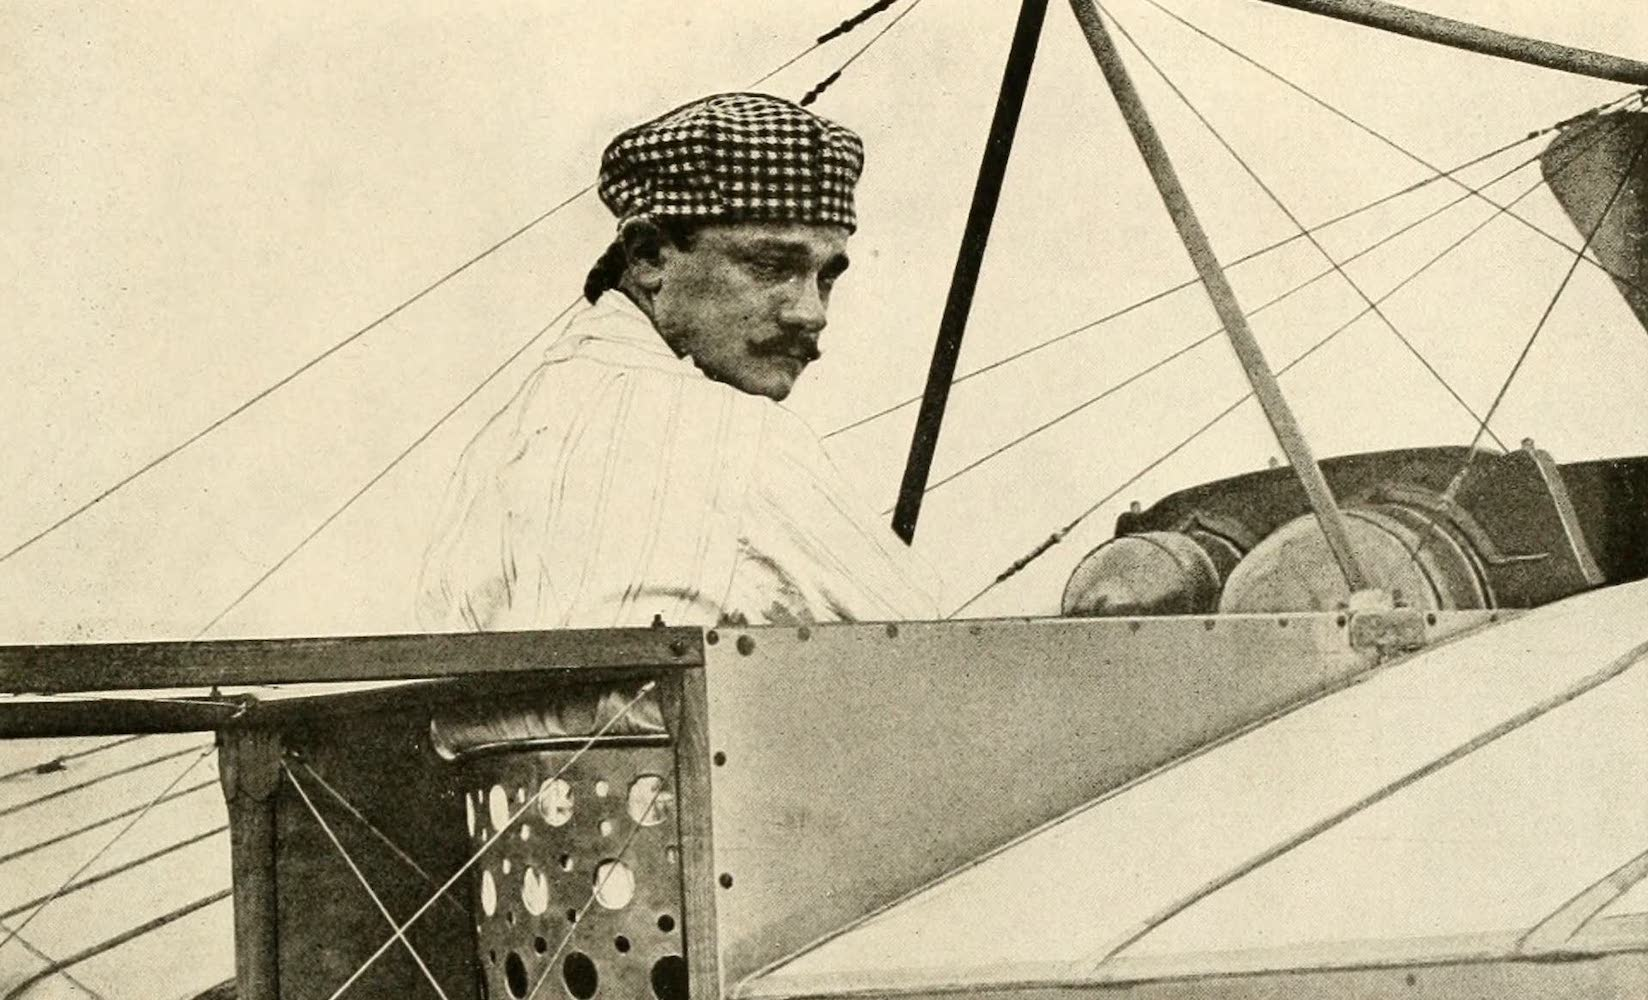 Laird & Lee's World's War Glimpses - Roland Garos, the Foremost of French Aviators (1914)